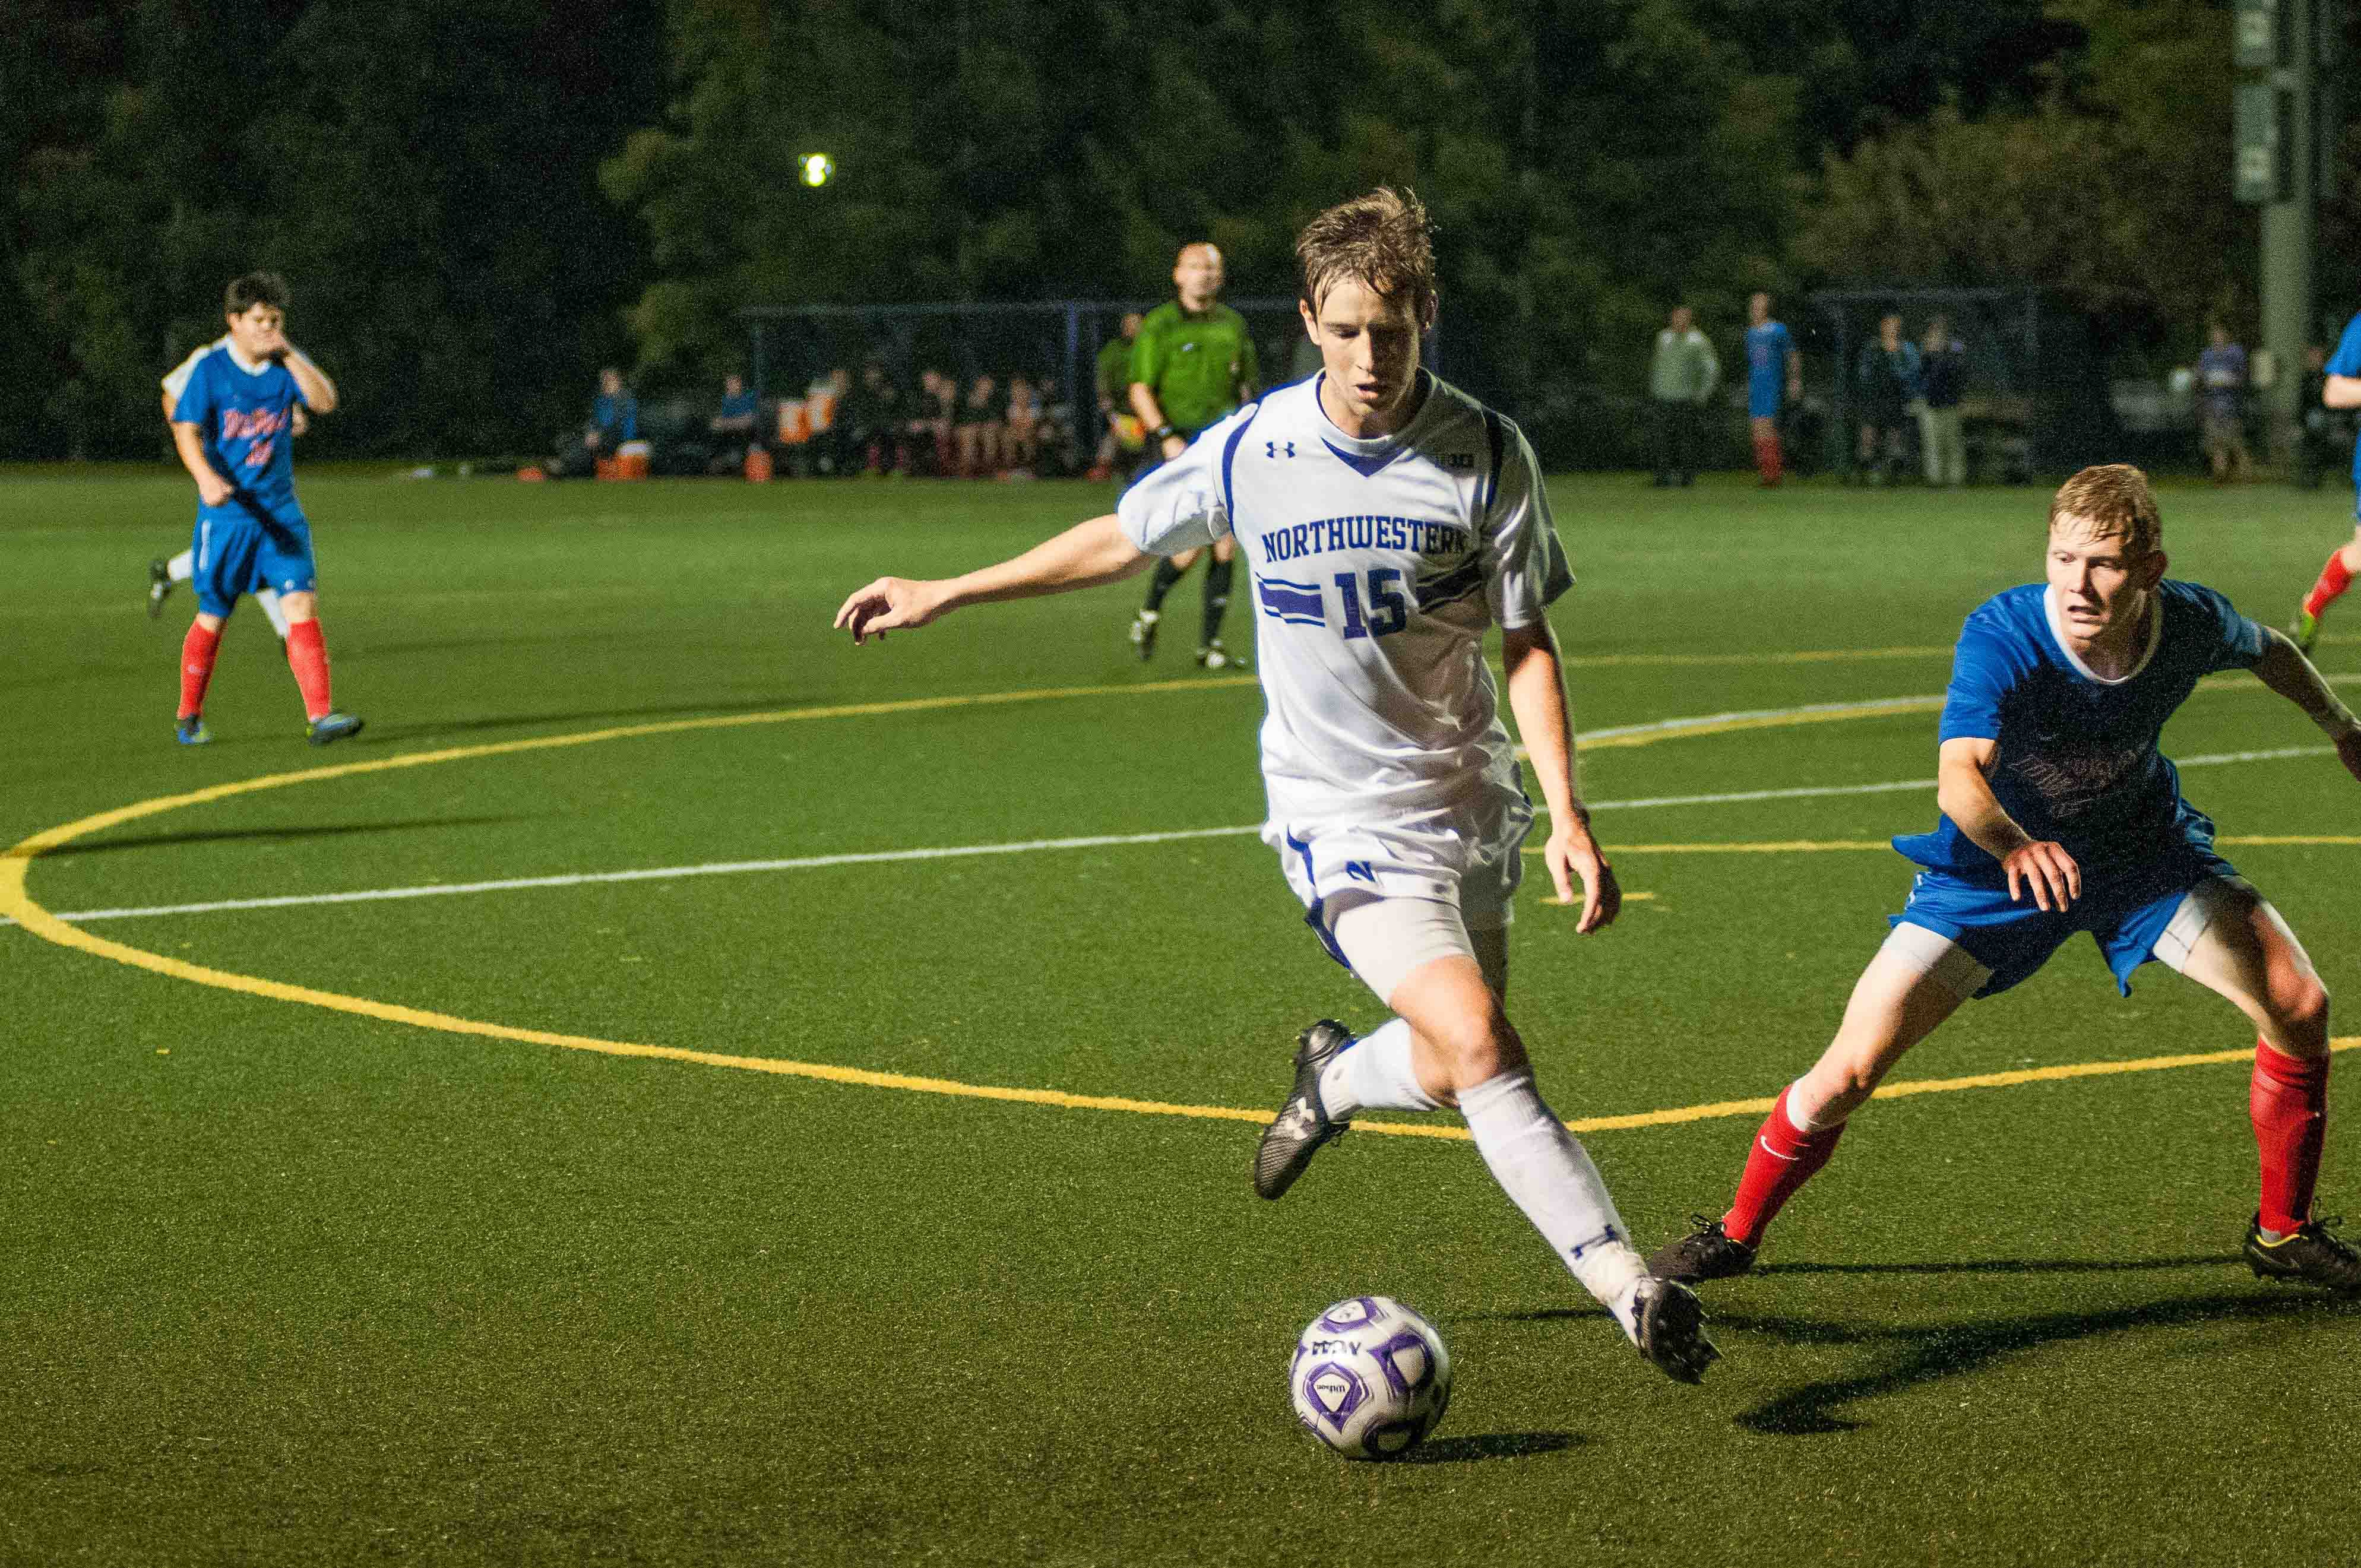 Cole Missimo works his way around a defender. The junior midfielder has used his fancy footwork to score a team-high 5 goals this season.